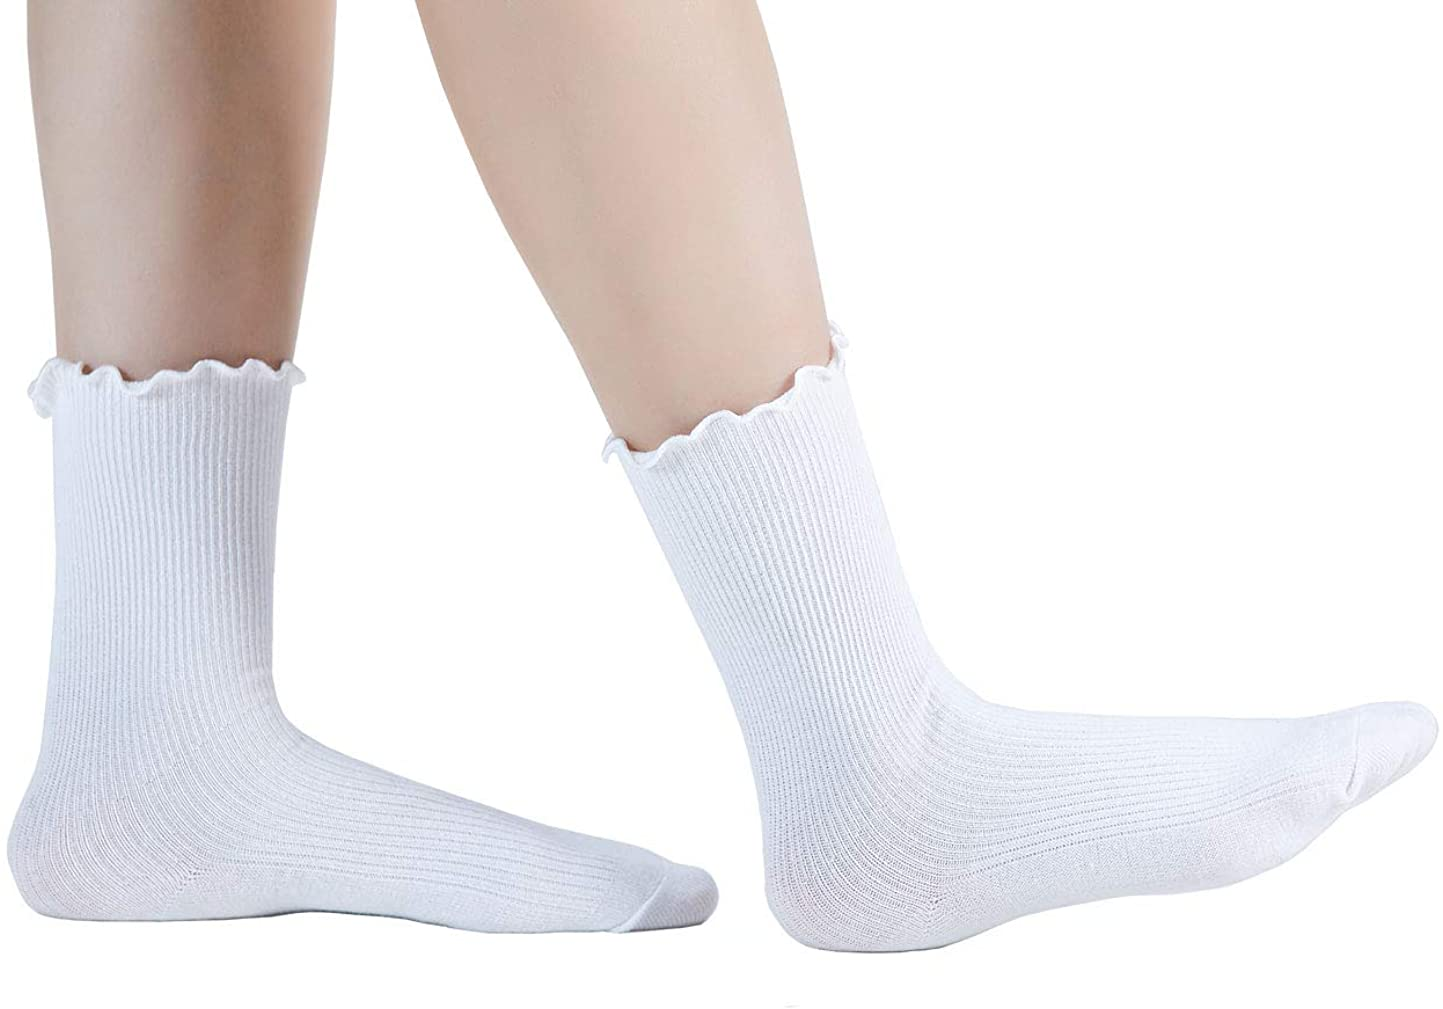 SEMOHOLLI Women Ankle Socks, Ruffle Turn-Cuff Ankle Casual Socks solid color relent socks for Women